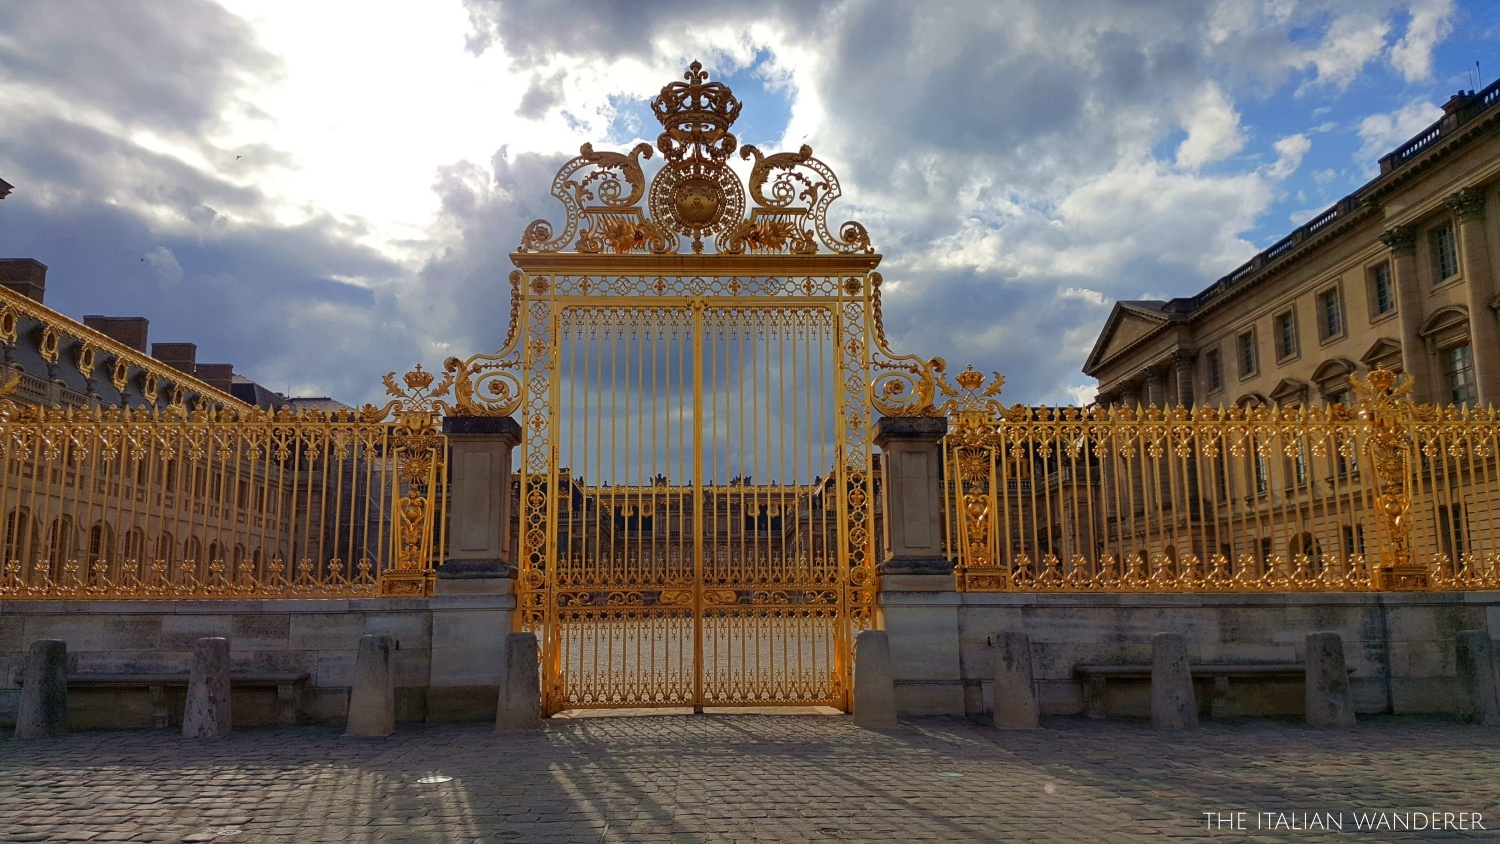 The stunning main entrance gate of Versailles, a golden vision :)